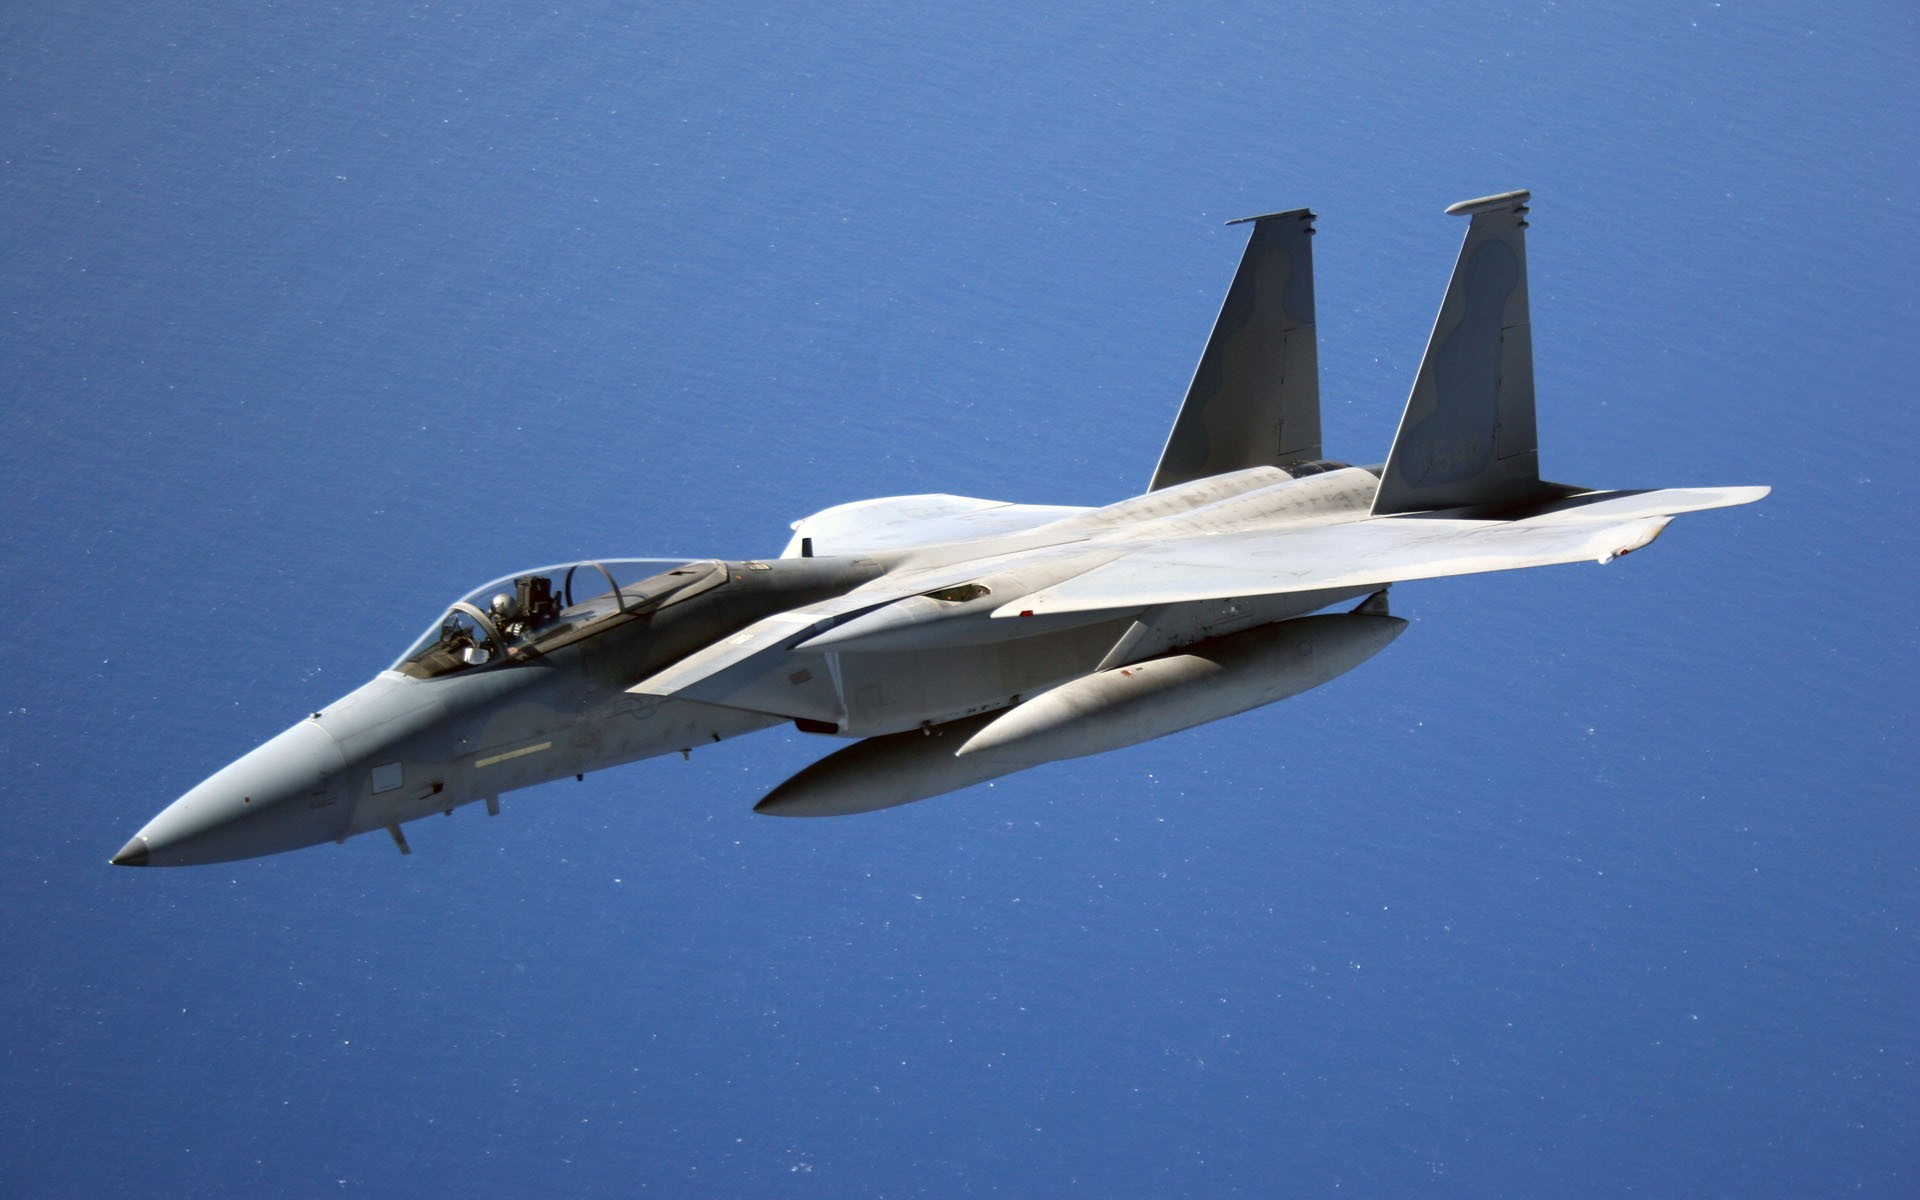 Aircraft War f-15 eagle HD Wallpaper